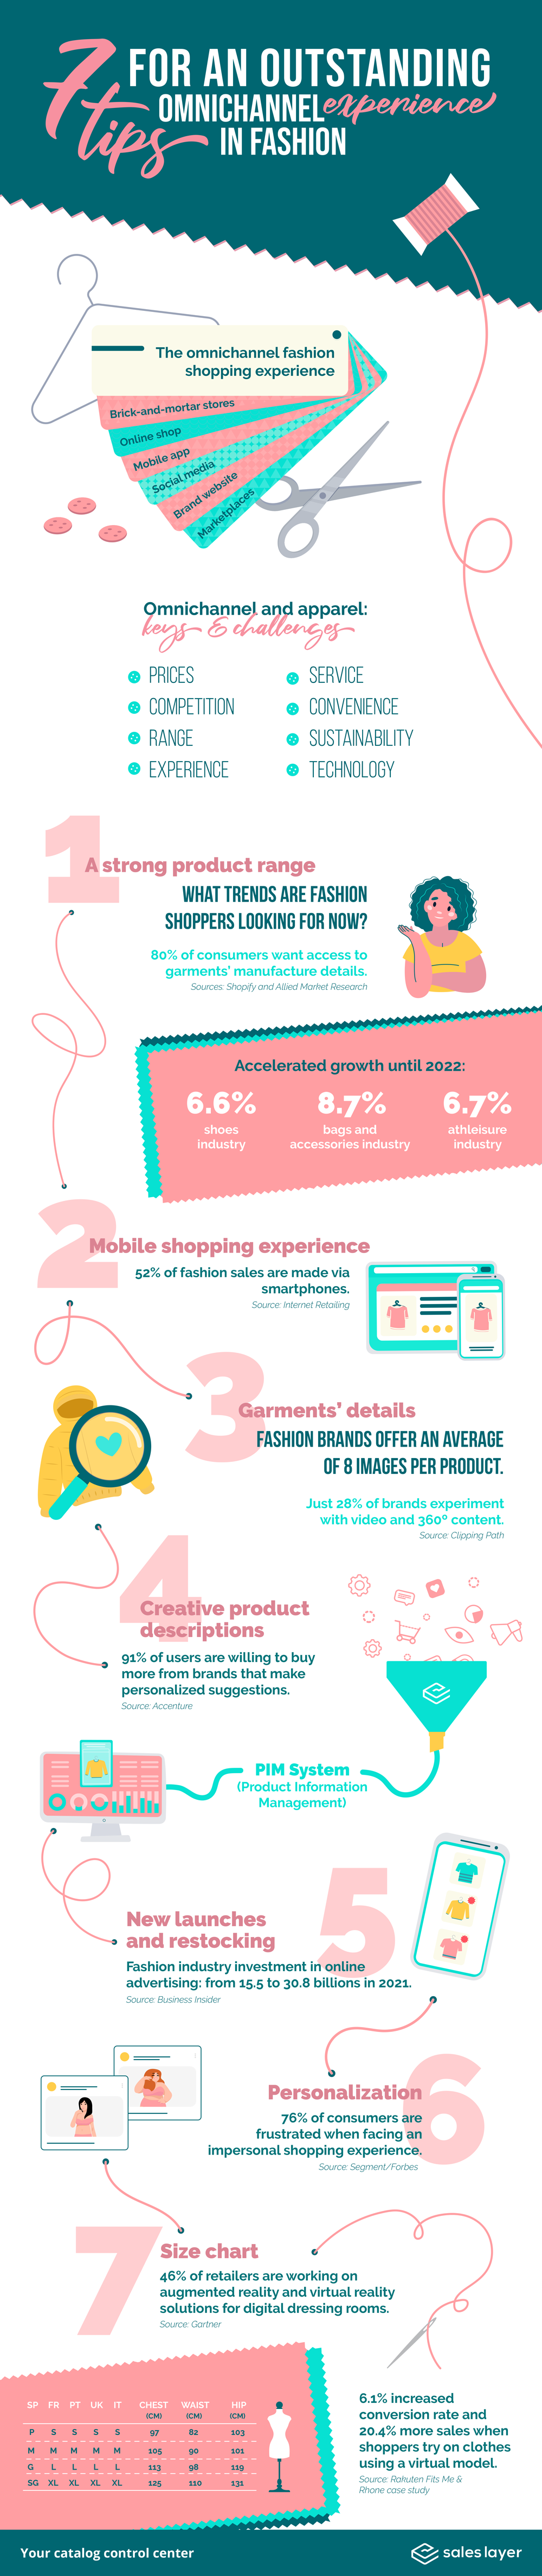 Omnichannel experience in fashion industry-infographic